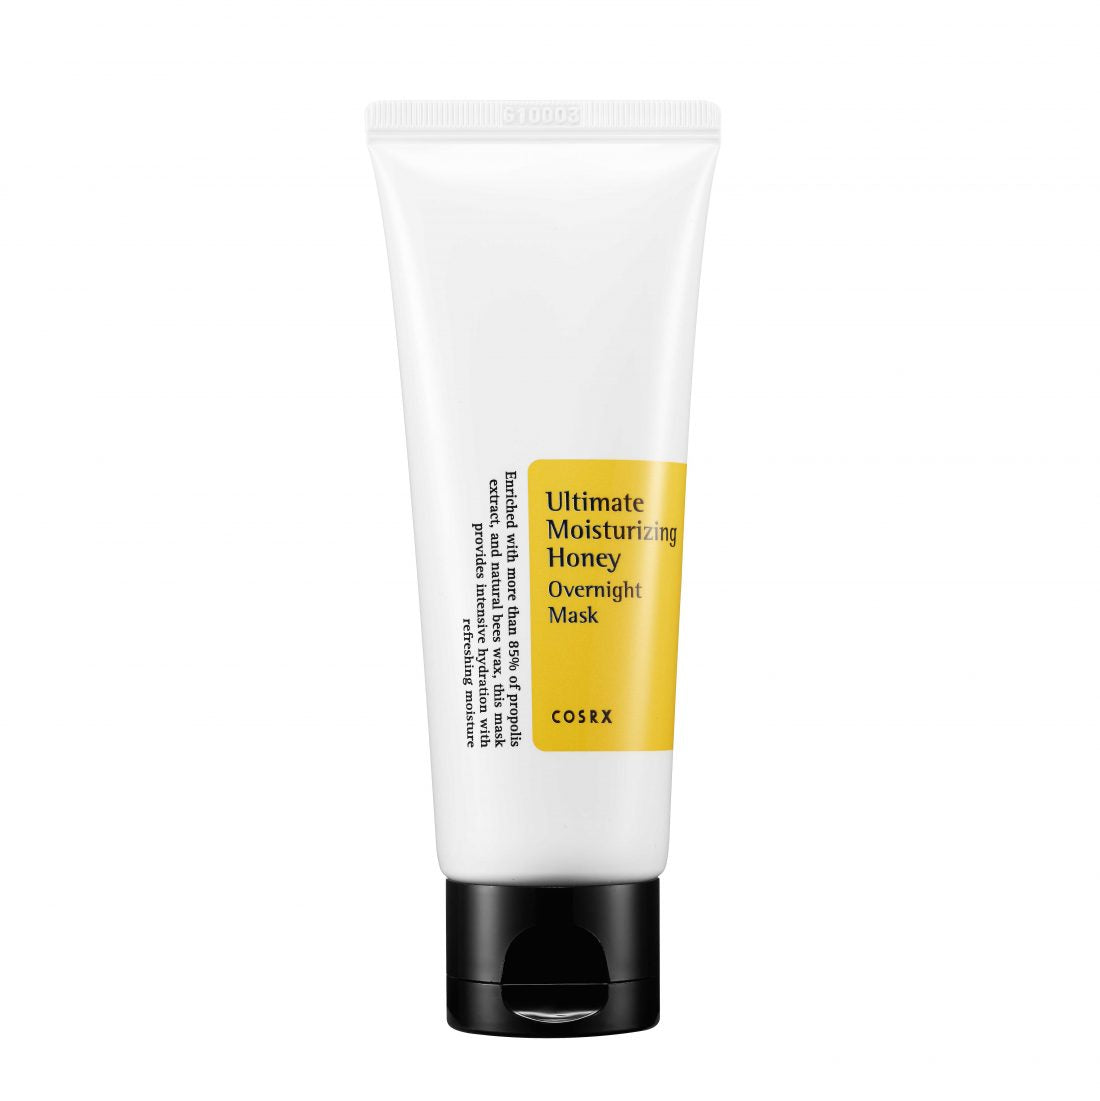 COSRX - Crème de Nuit au Miel - Ultimate Moisturizing Honey Overnight Mask - Ambelle